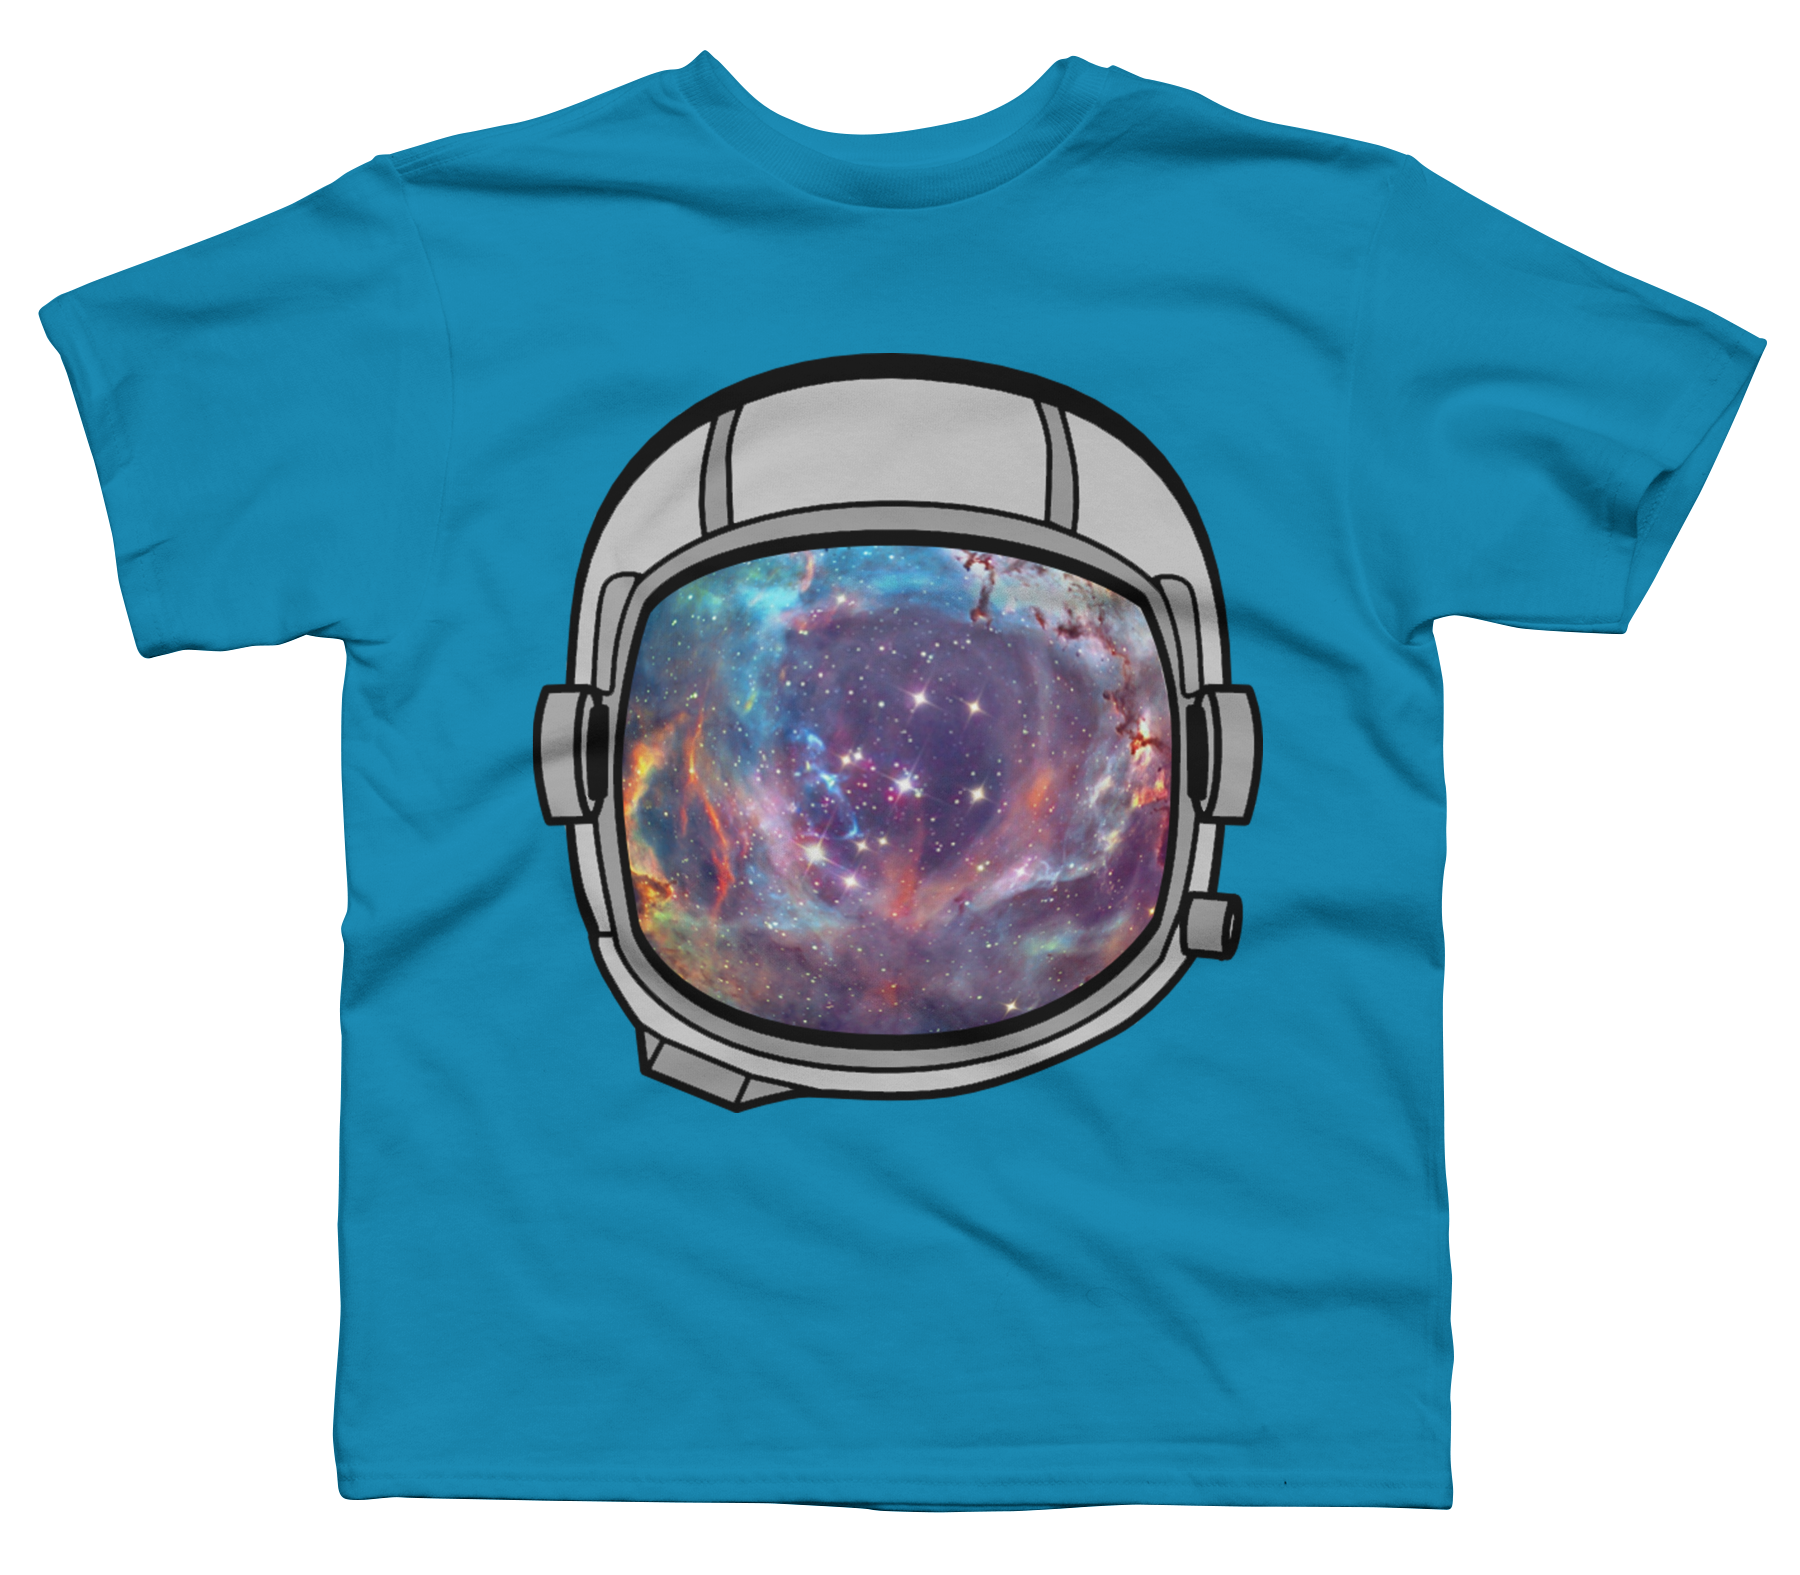 Space Helmet Boy's T-Shirt